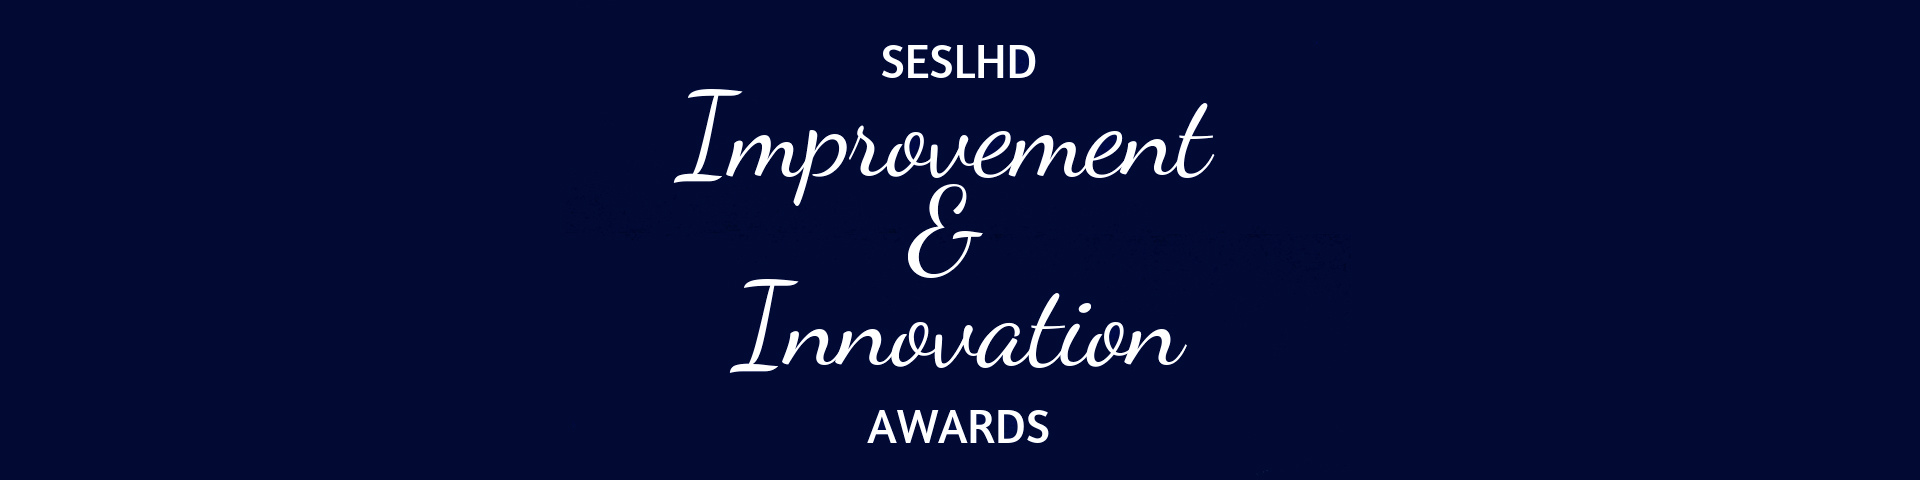 2019 Improvement and Innovation Awards wording on blue background